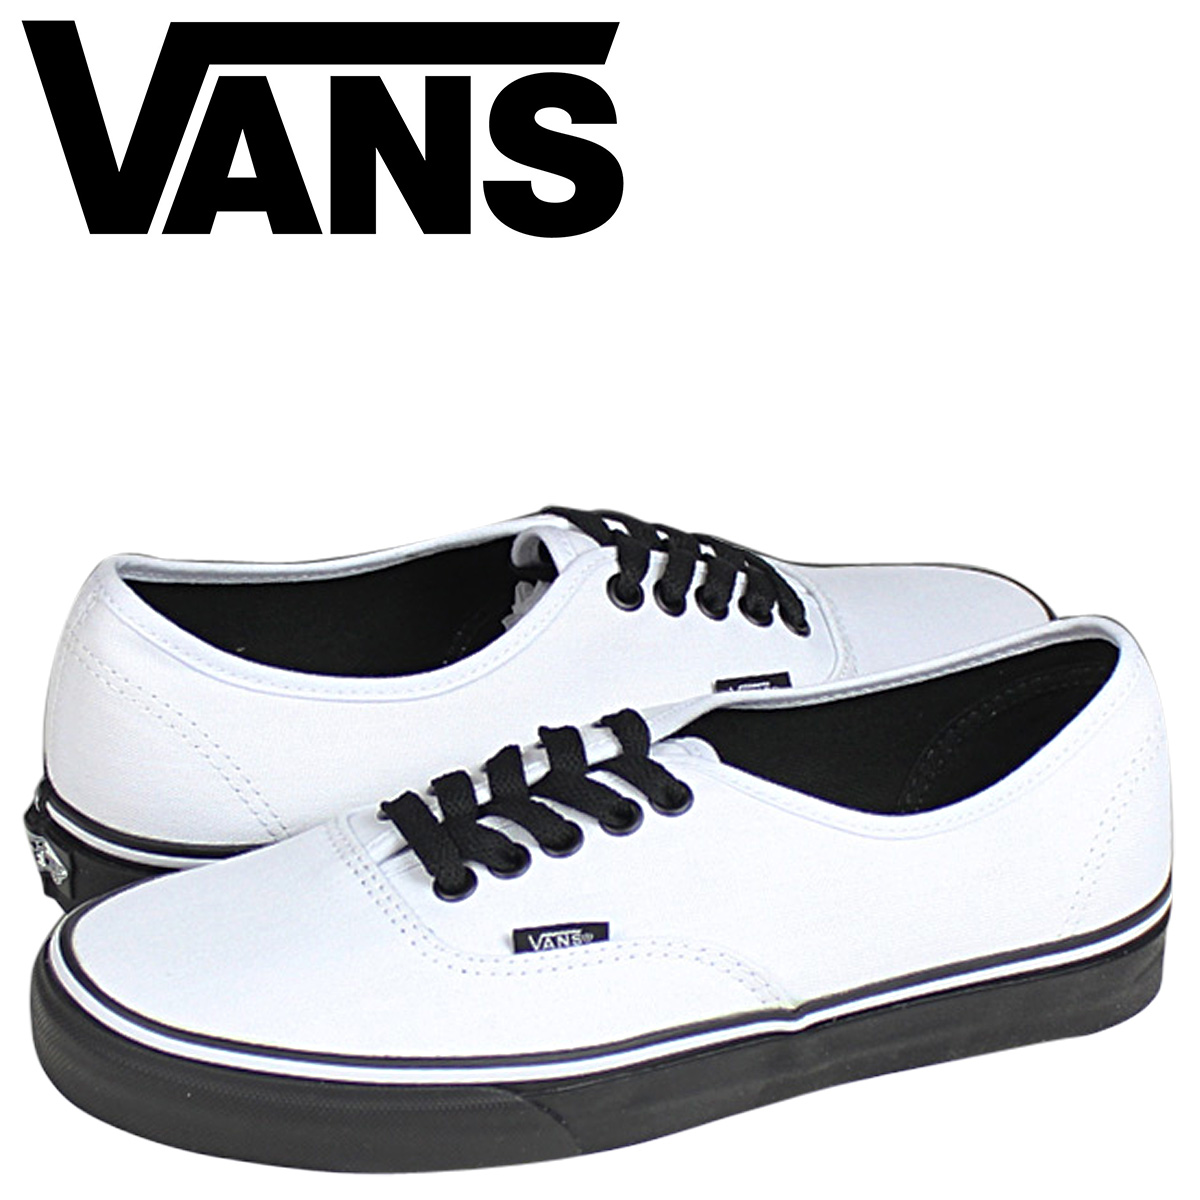 Vans VANS authentic sneakers AUTHENTIC BLACK SOLE VN-0YS7EOS men gap Dis shoes white white